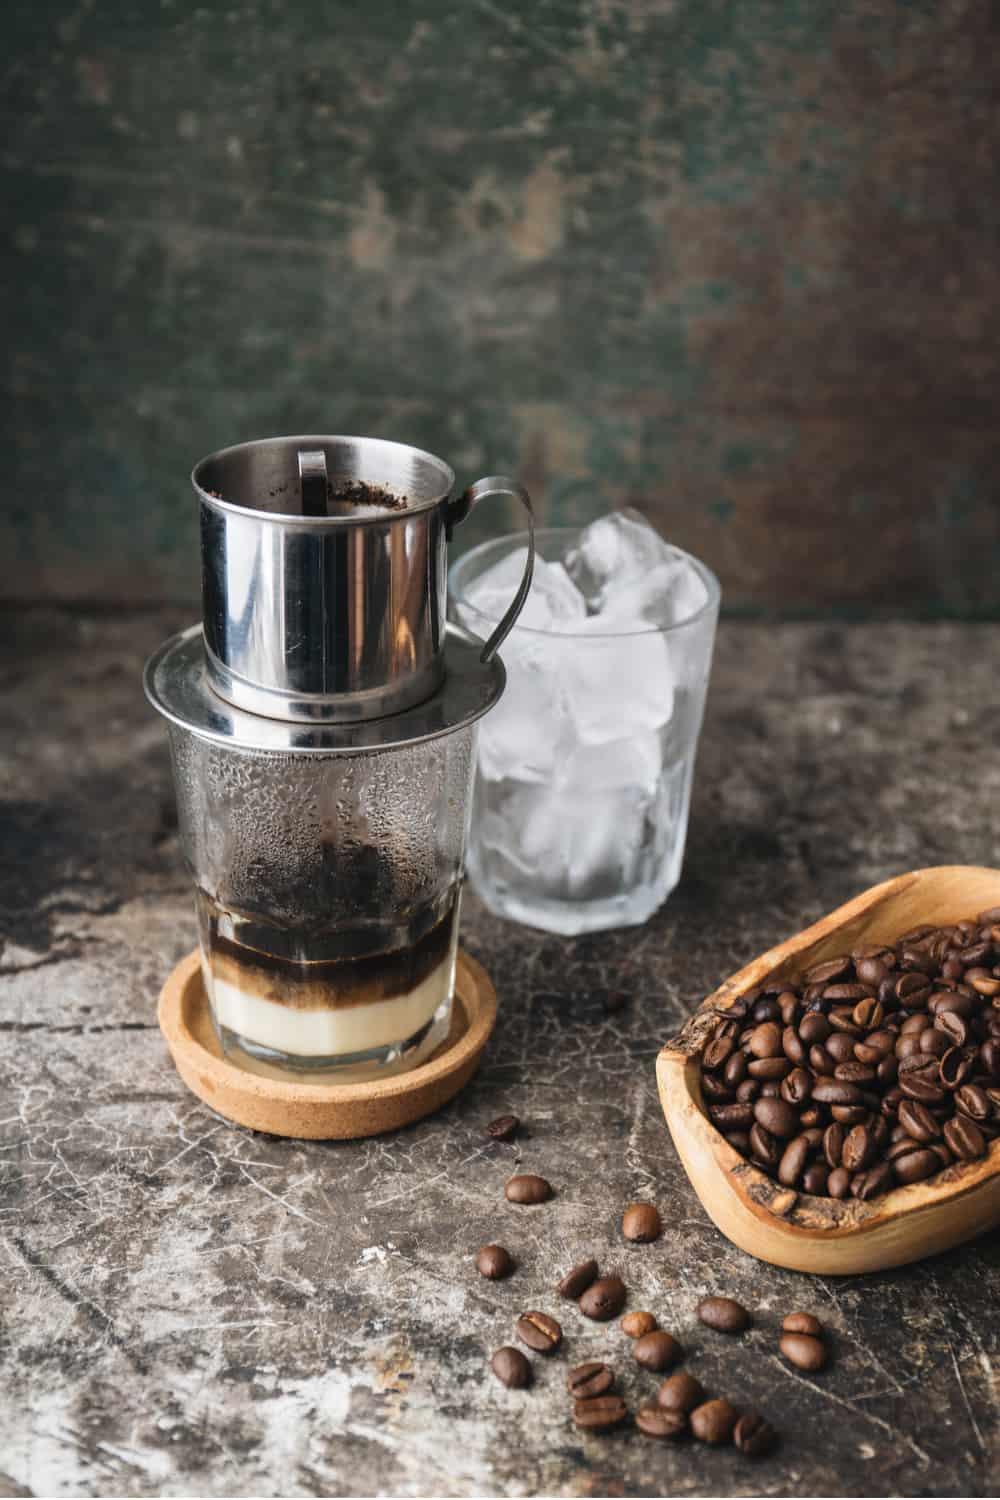 10 Easy Steps to Make Vietnamese Coffee